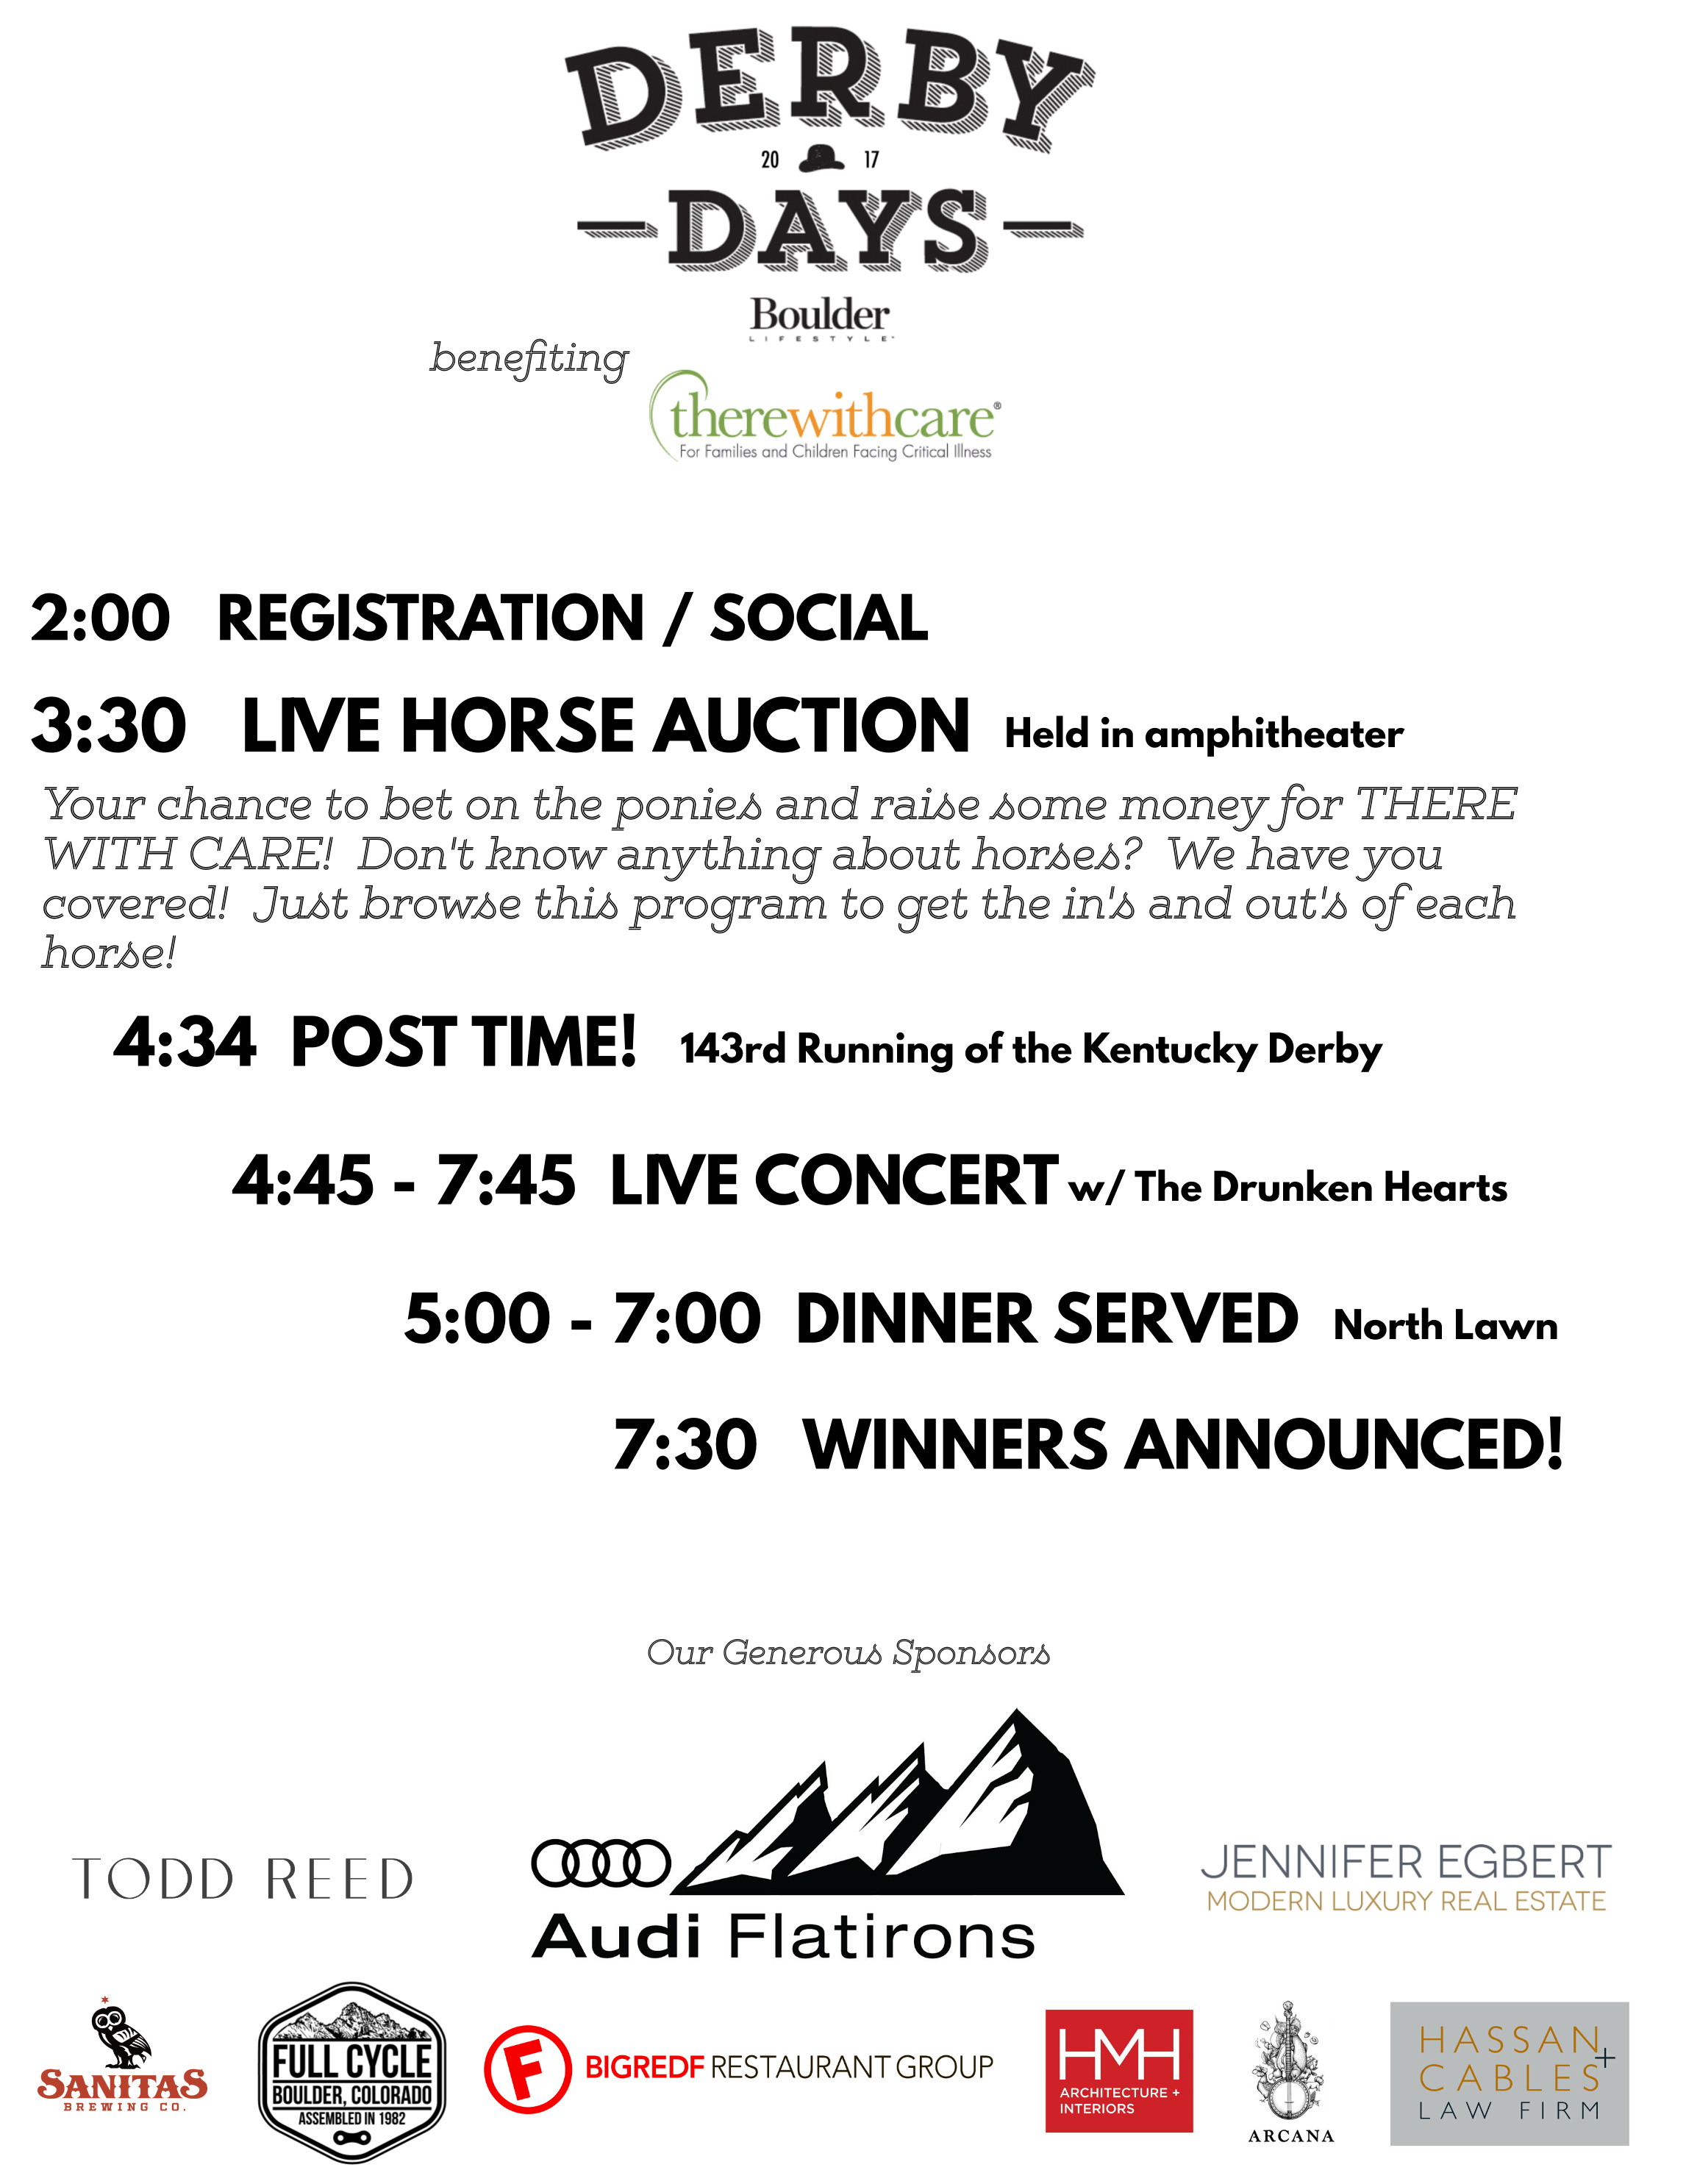 boulder lifestyle derby days 2017 tickets, sat, may 6, 2017 at 2